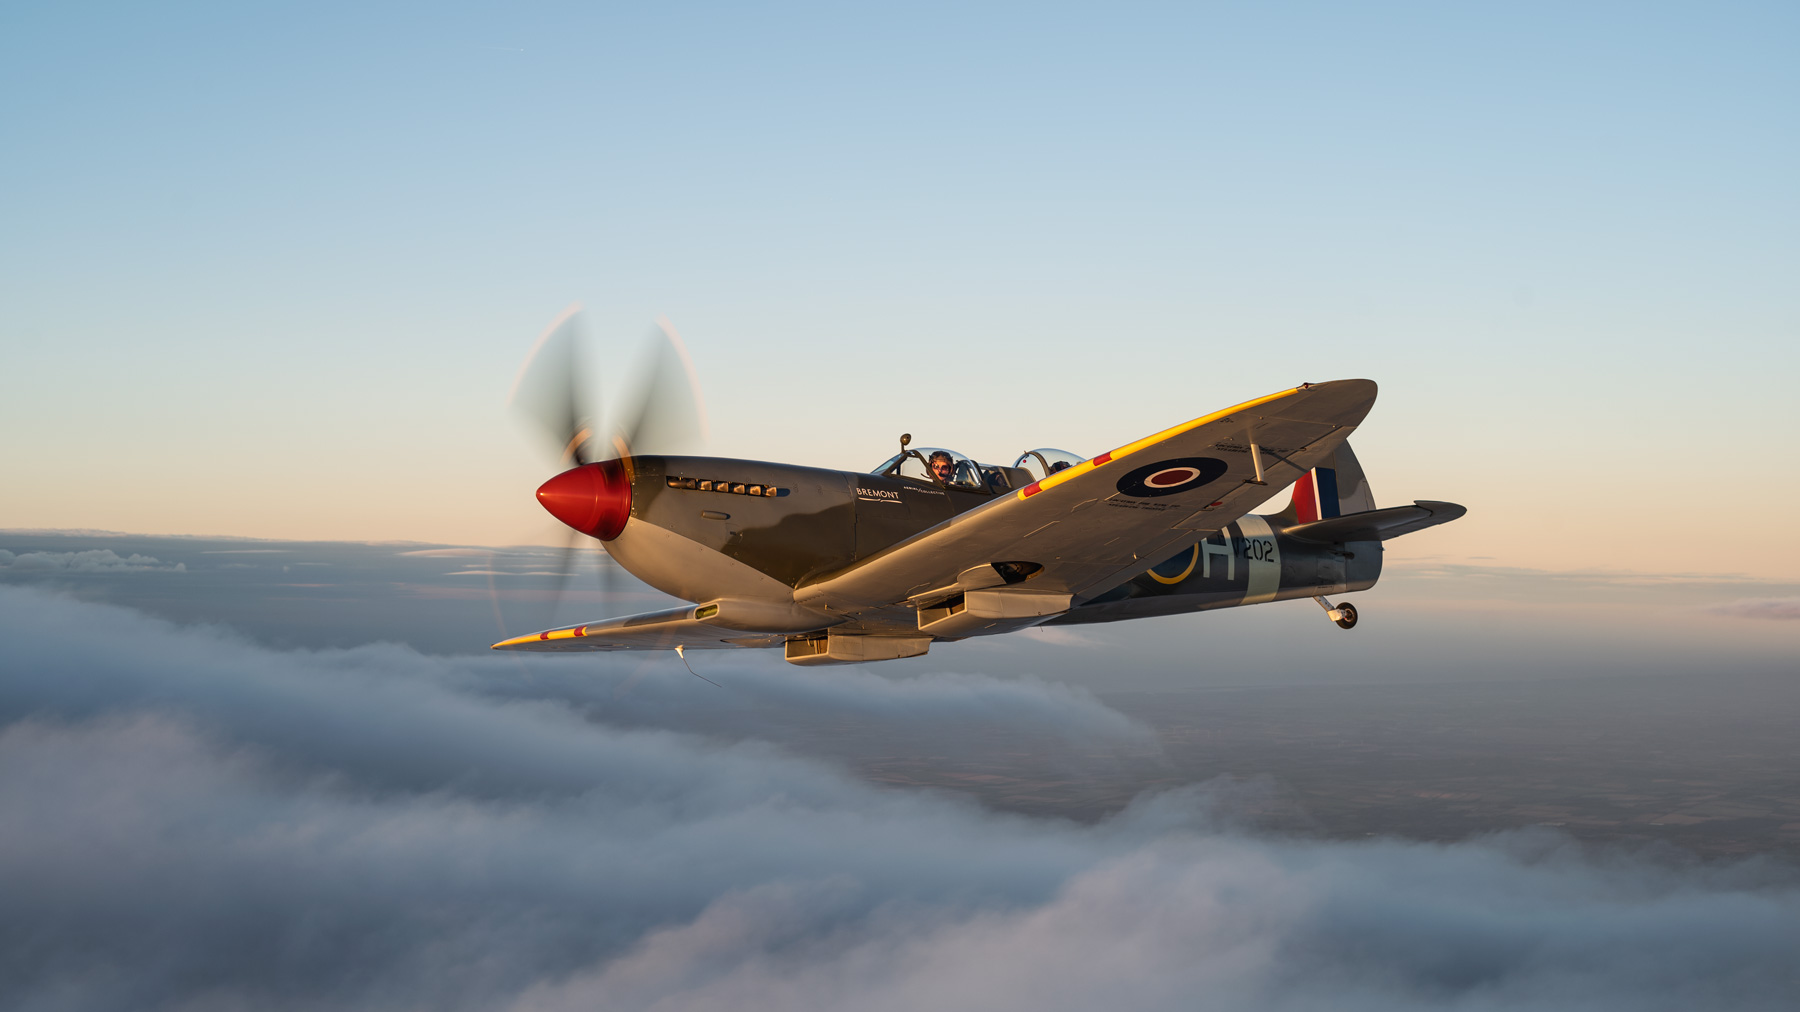 ARCo-Spitfire-PV202-Flight-Feature.jpg